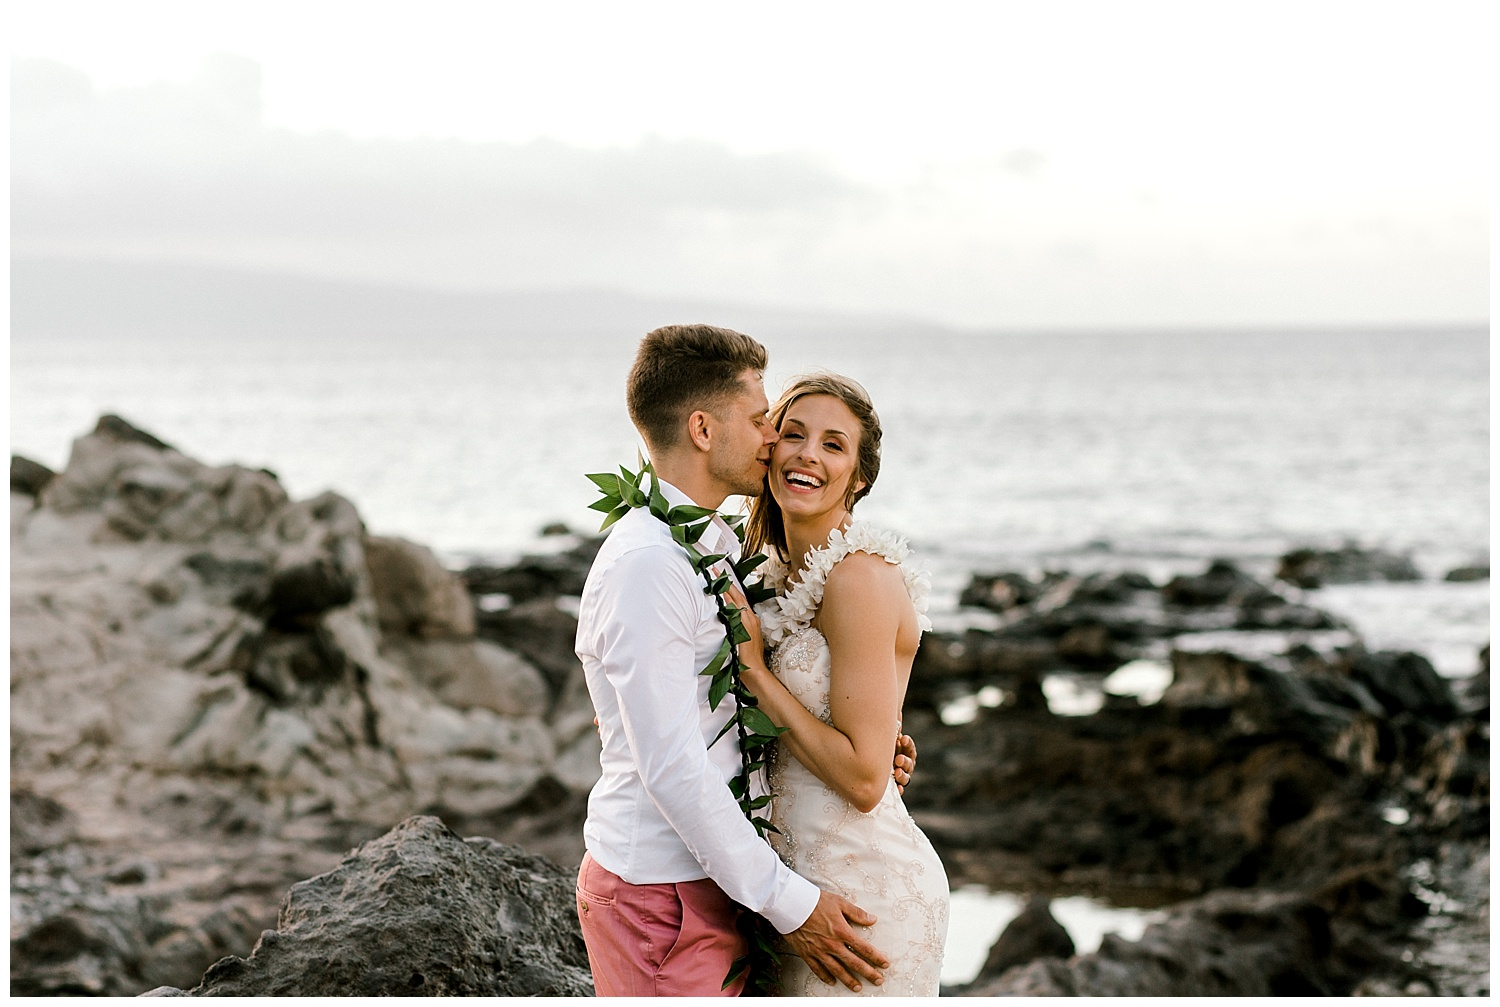 Maui-Elopement-Photography-Ironwoods-Elopement_0151.jpg